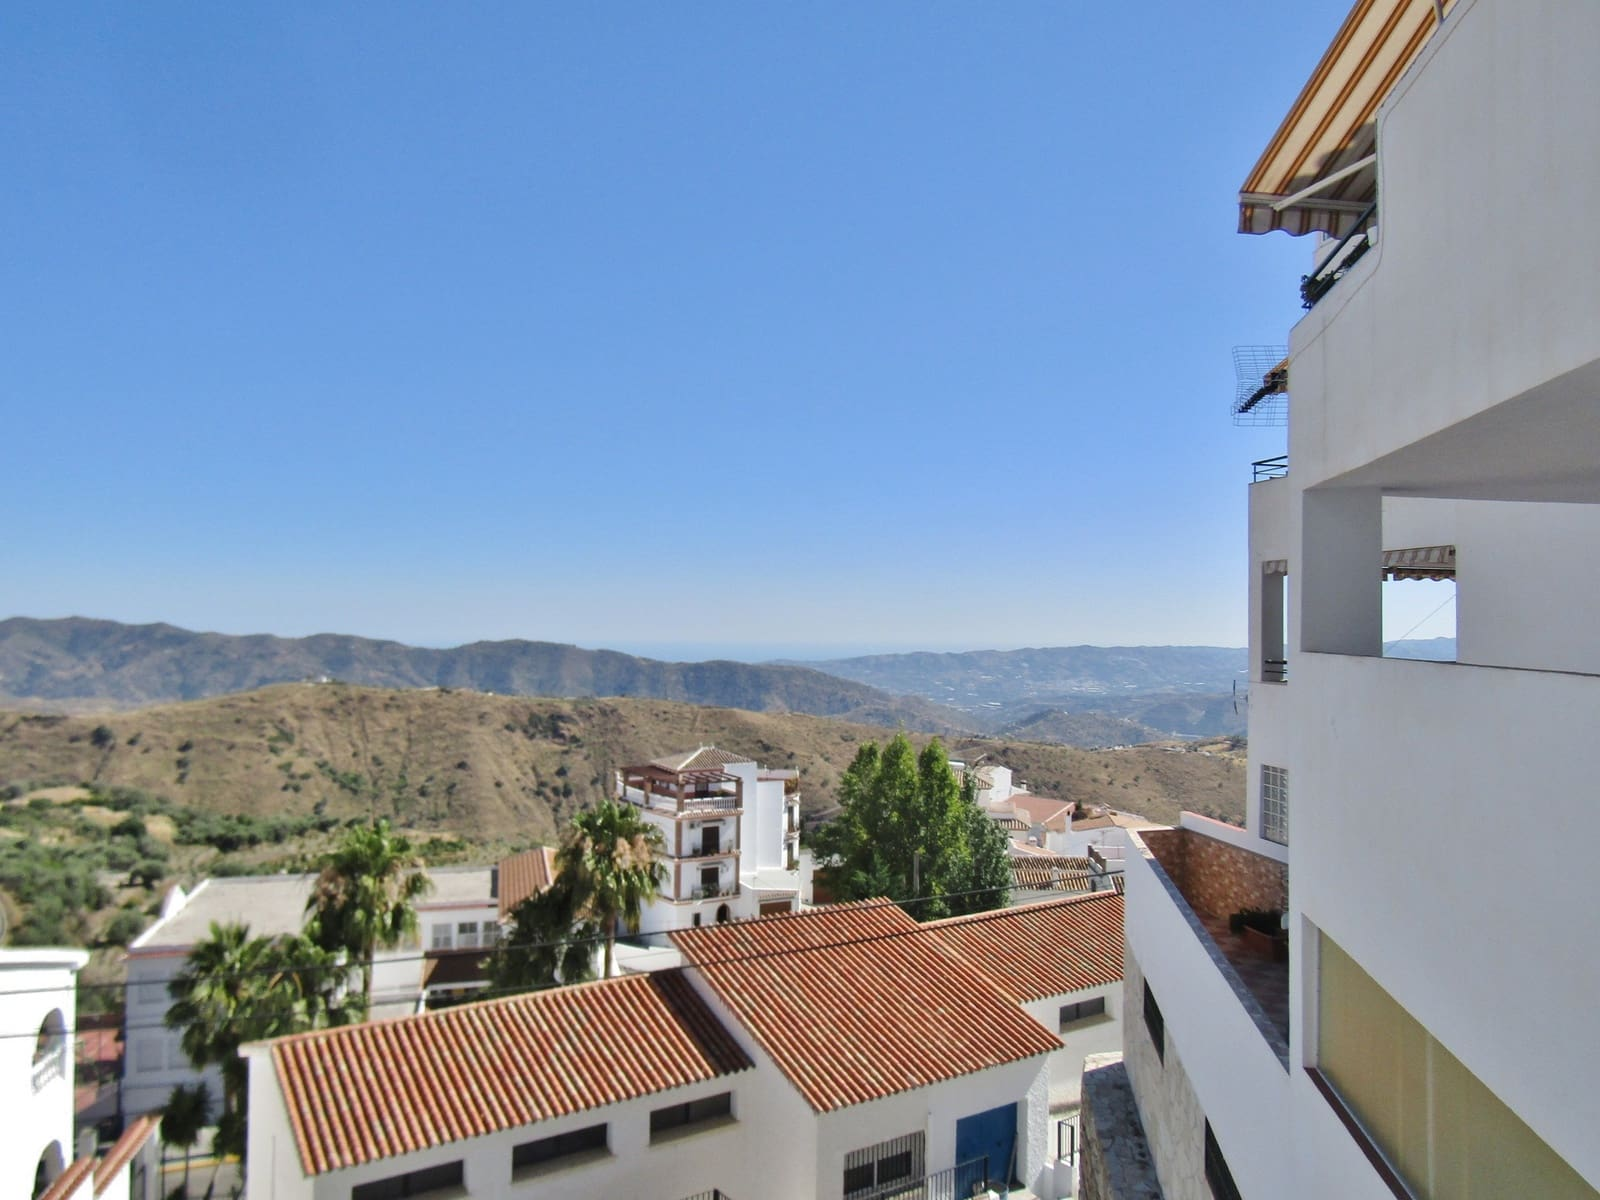 2 bedroom Apartment for sale in Canillas de Aceituno - € 85,000 (Ref: 4680874)